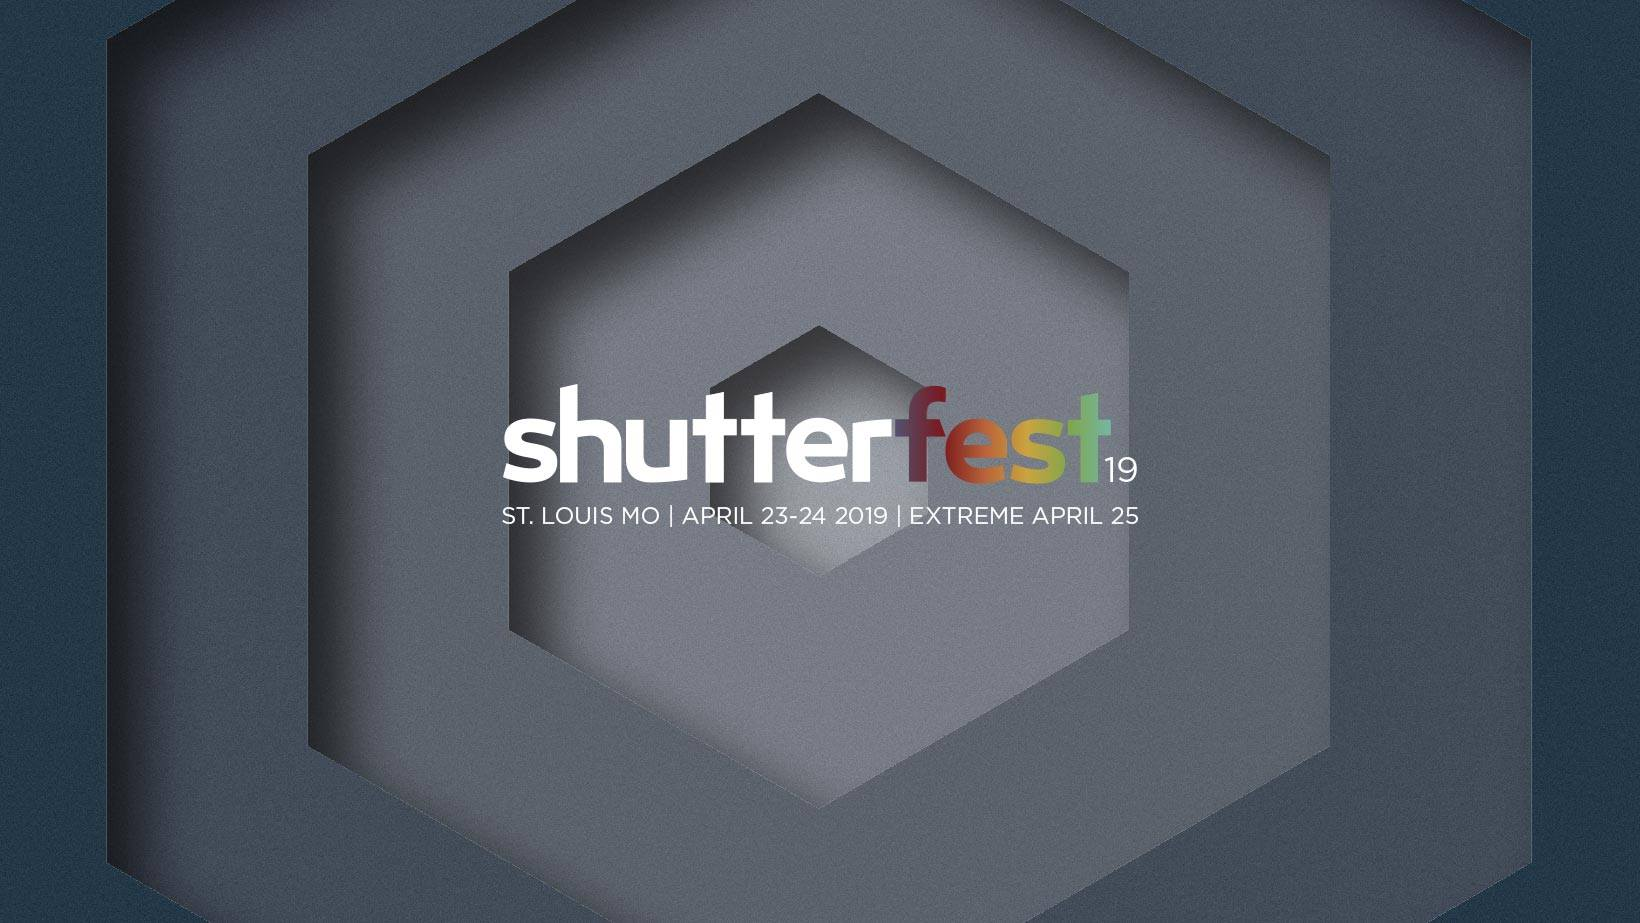 April 23-25, 2019 |Shutterfest is having Jordan teach classes on the creative use lighting and frame-rates in filmmaking -